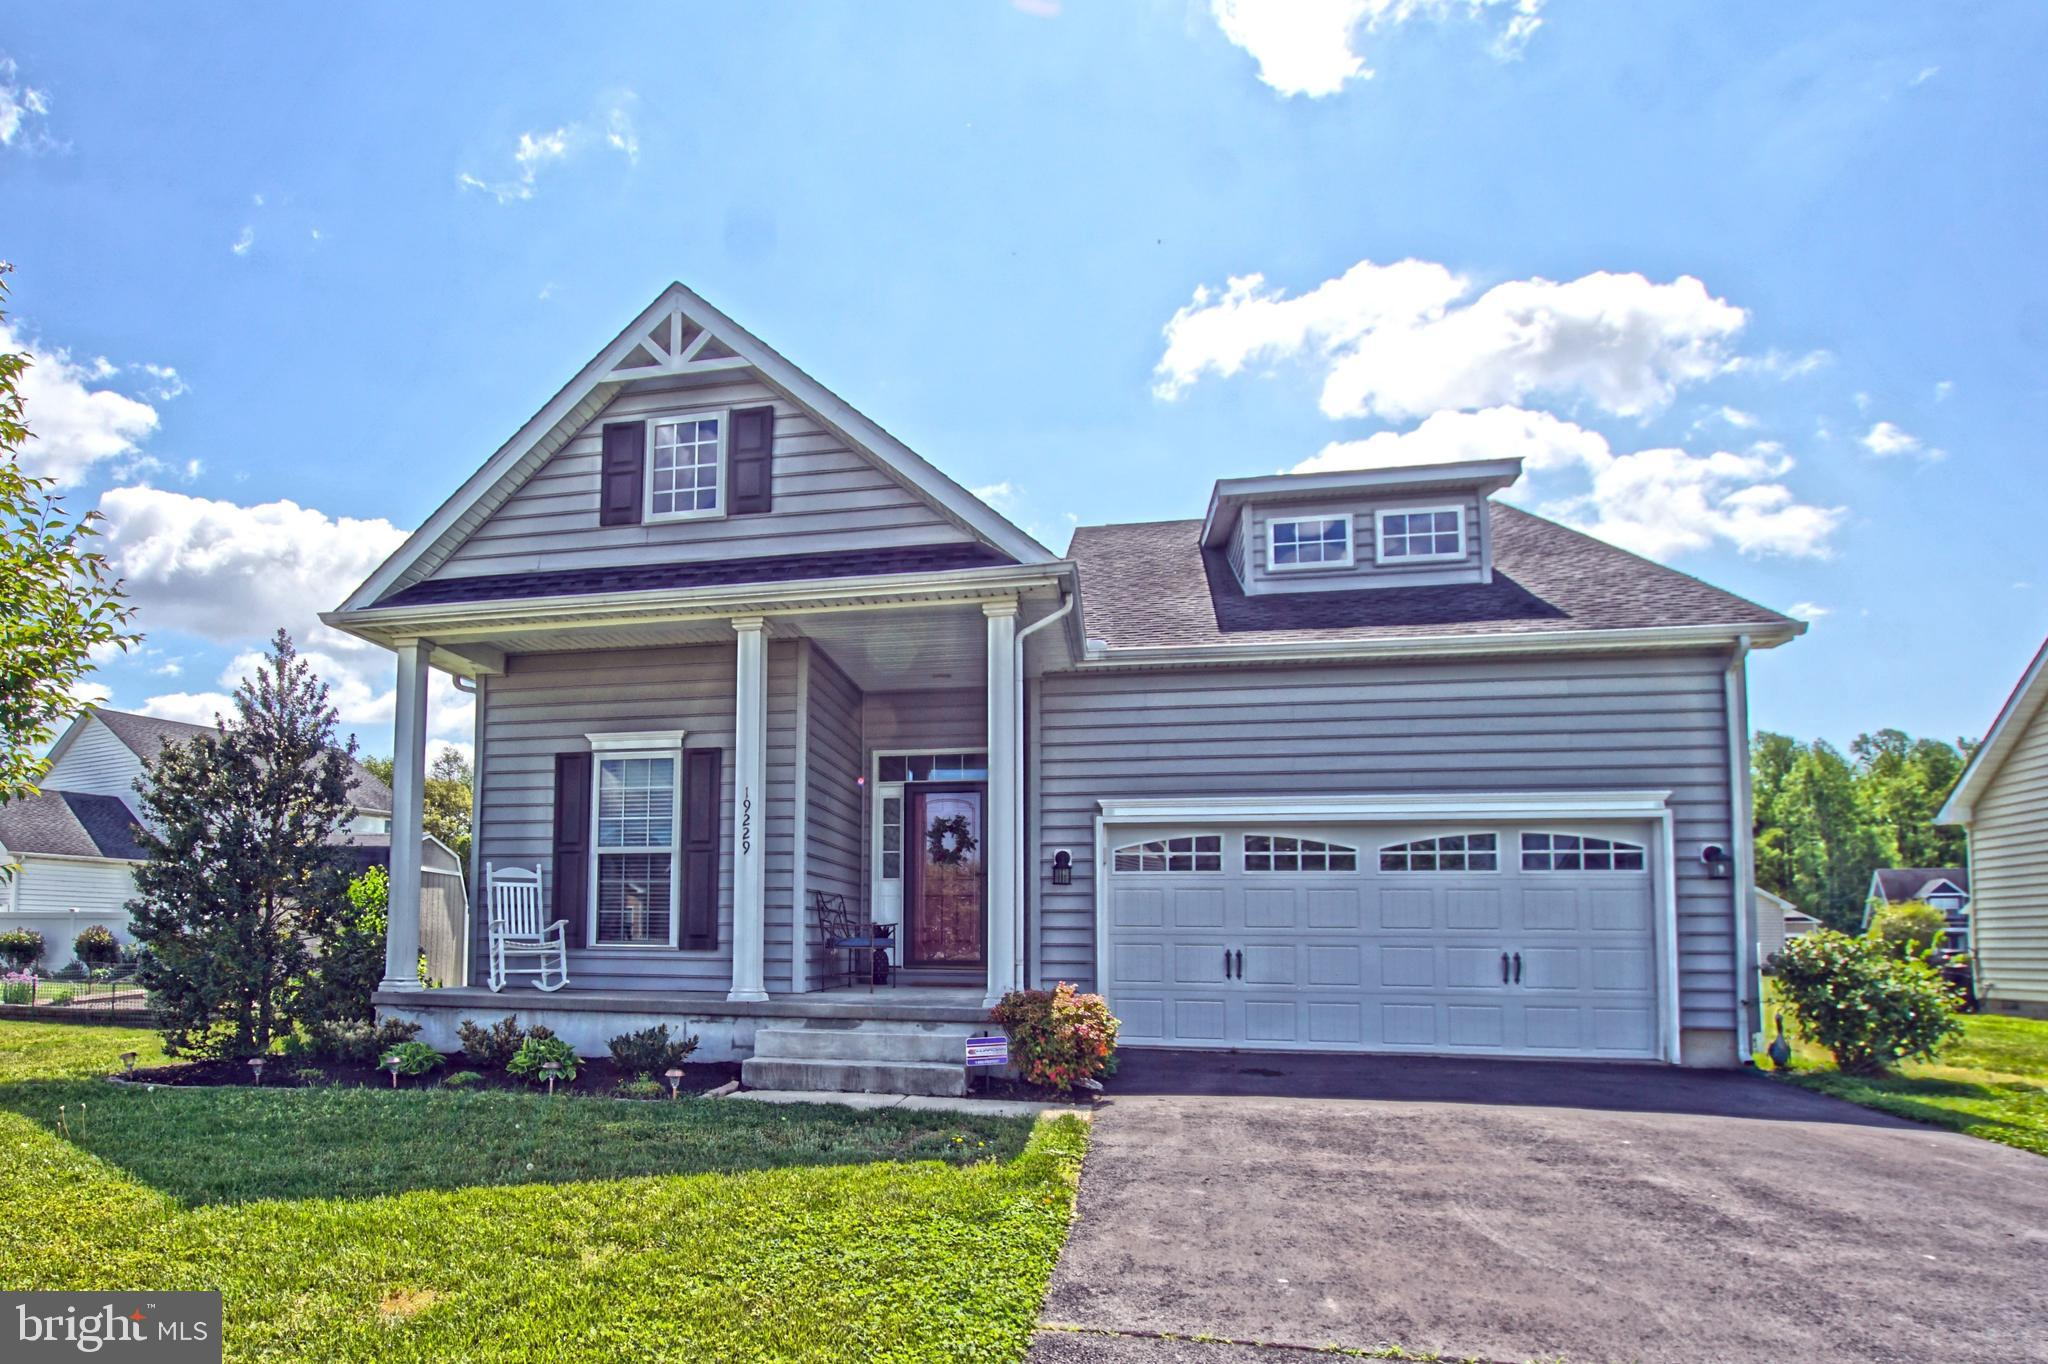 MOVE RIGHT IN! Don't miss this picture perfect, move-in ready, 3 bedroom, 2 bath home. This home off